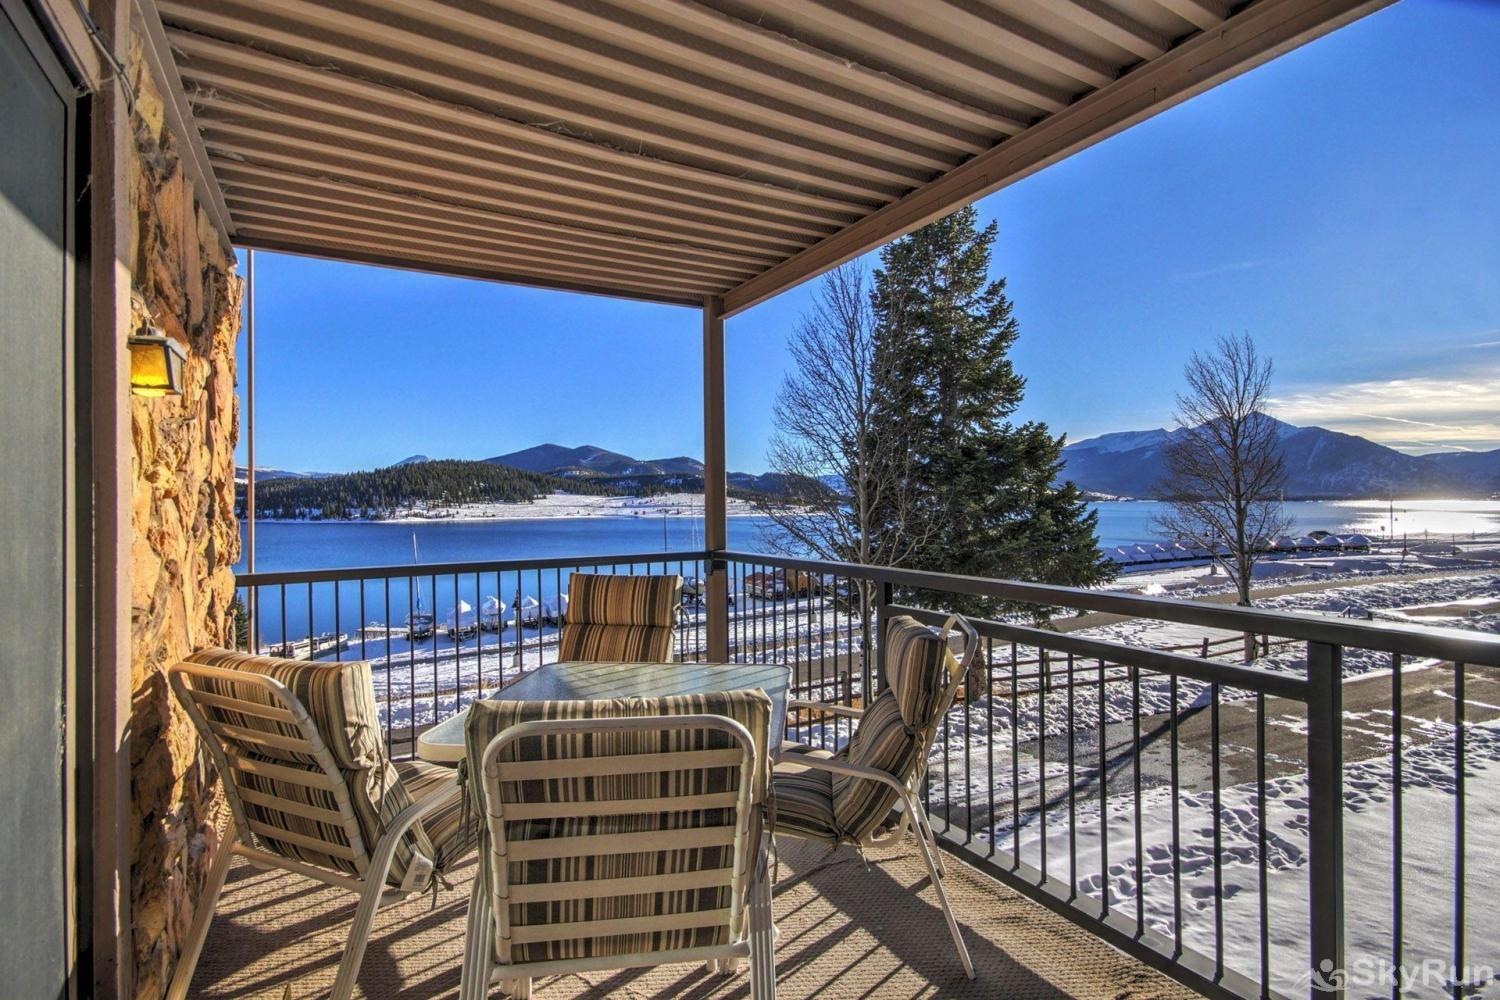 A208 Lake Cliffe Condos  2BR 2BA Large private deck